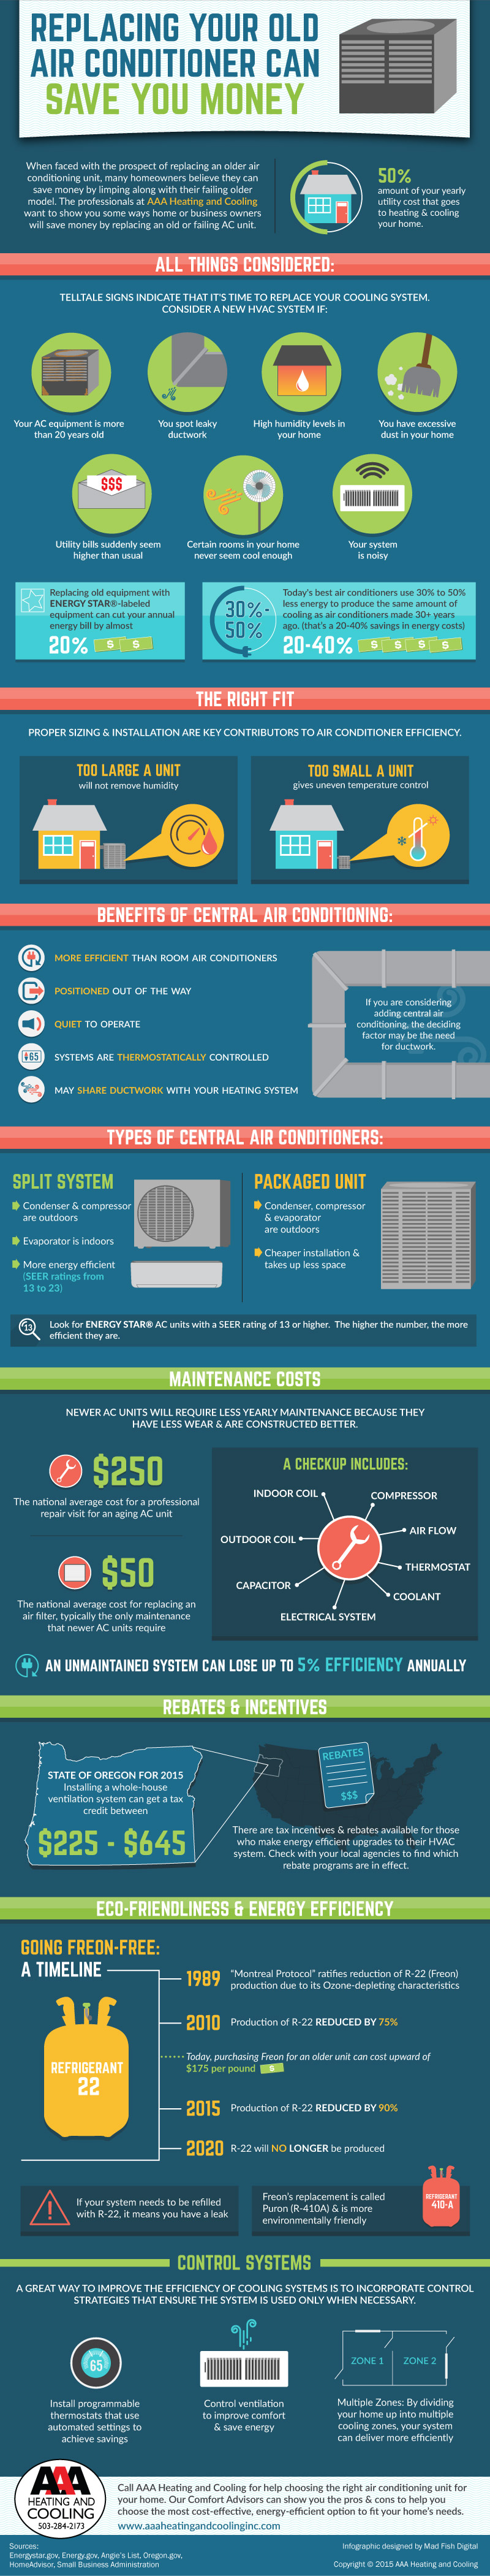 save money with a new air conditioner